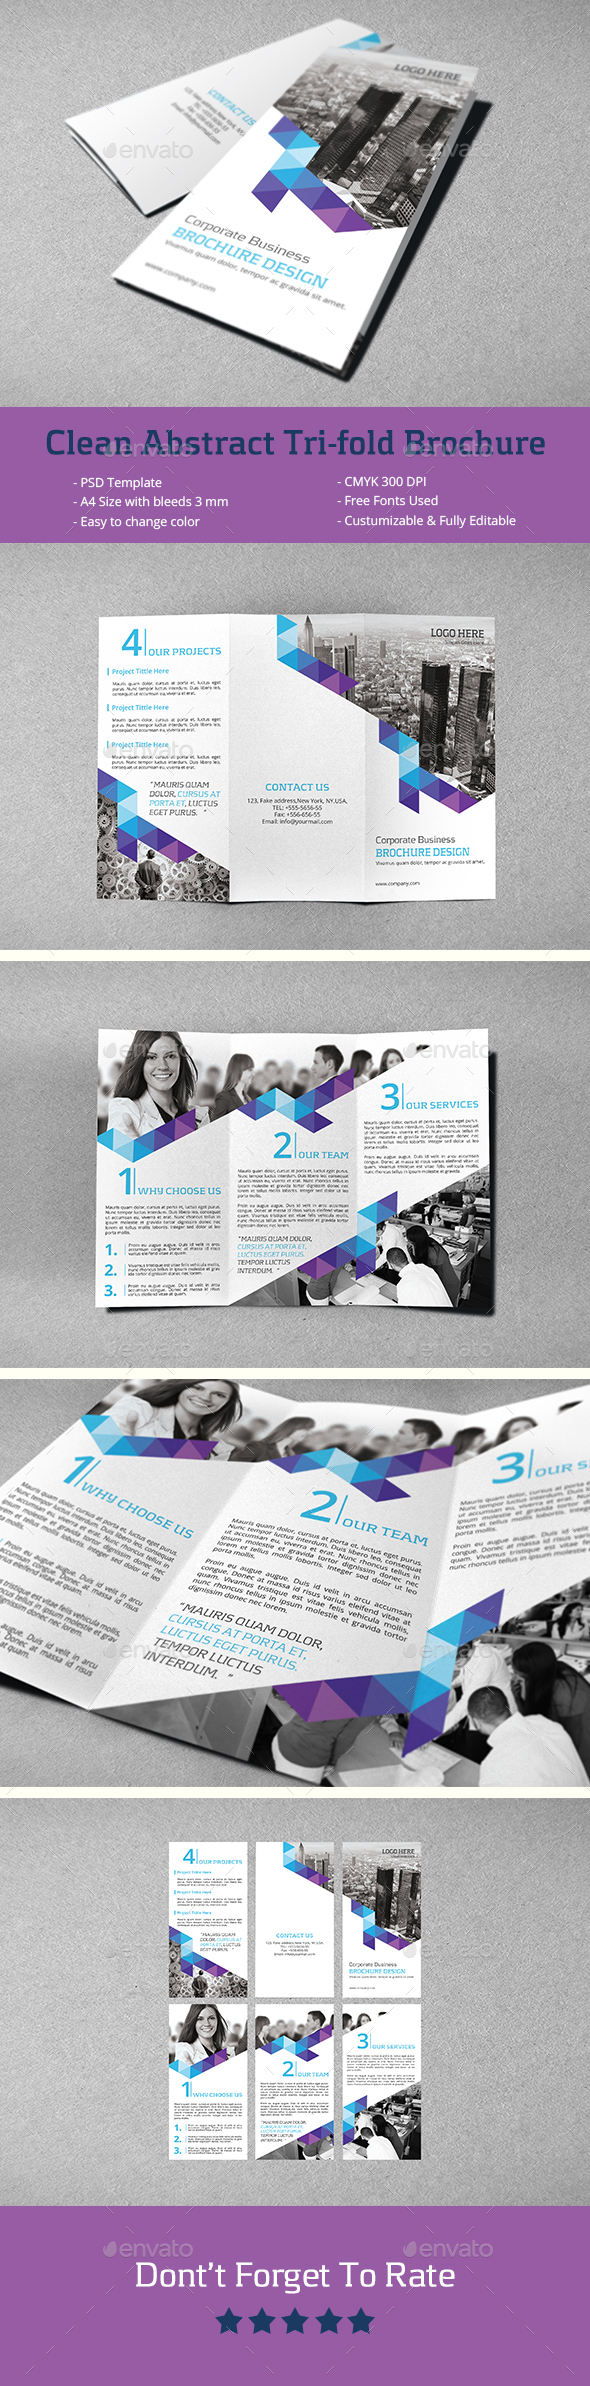 Clean Abstract Tri-fold Brochure  - Corporate Brochures